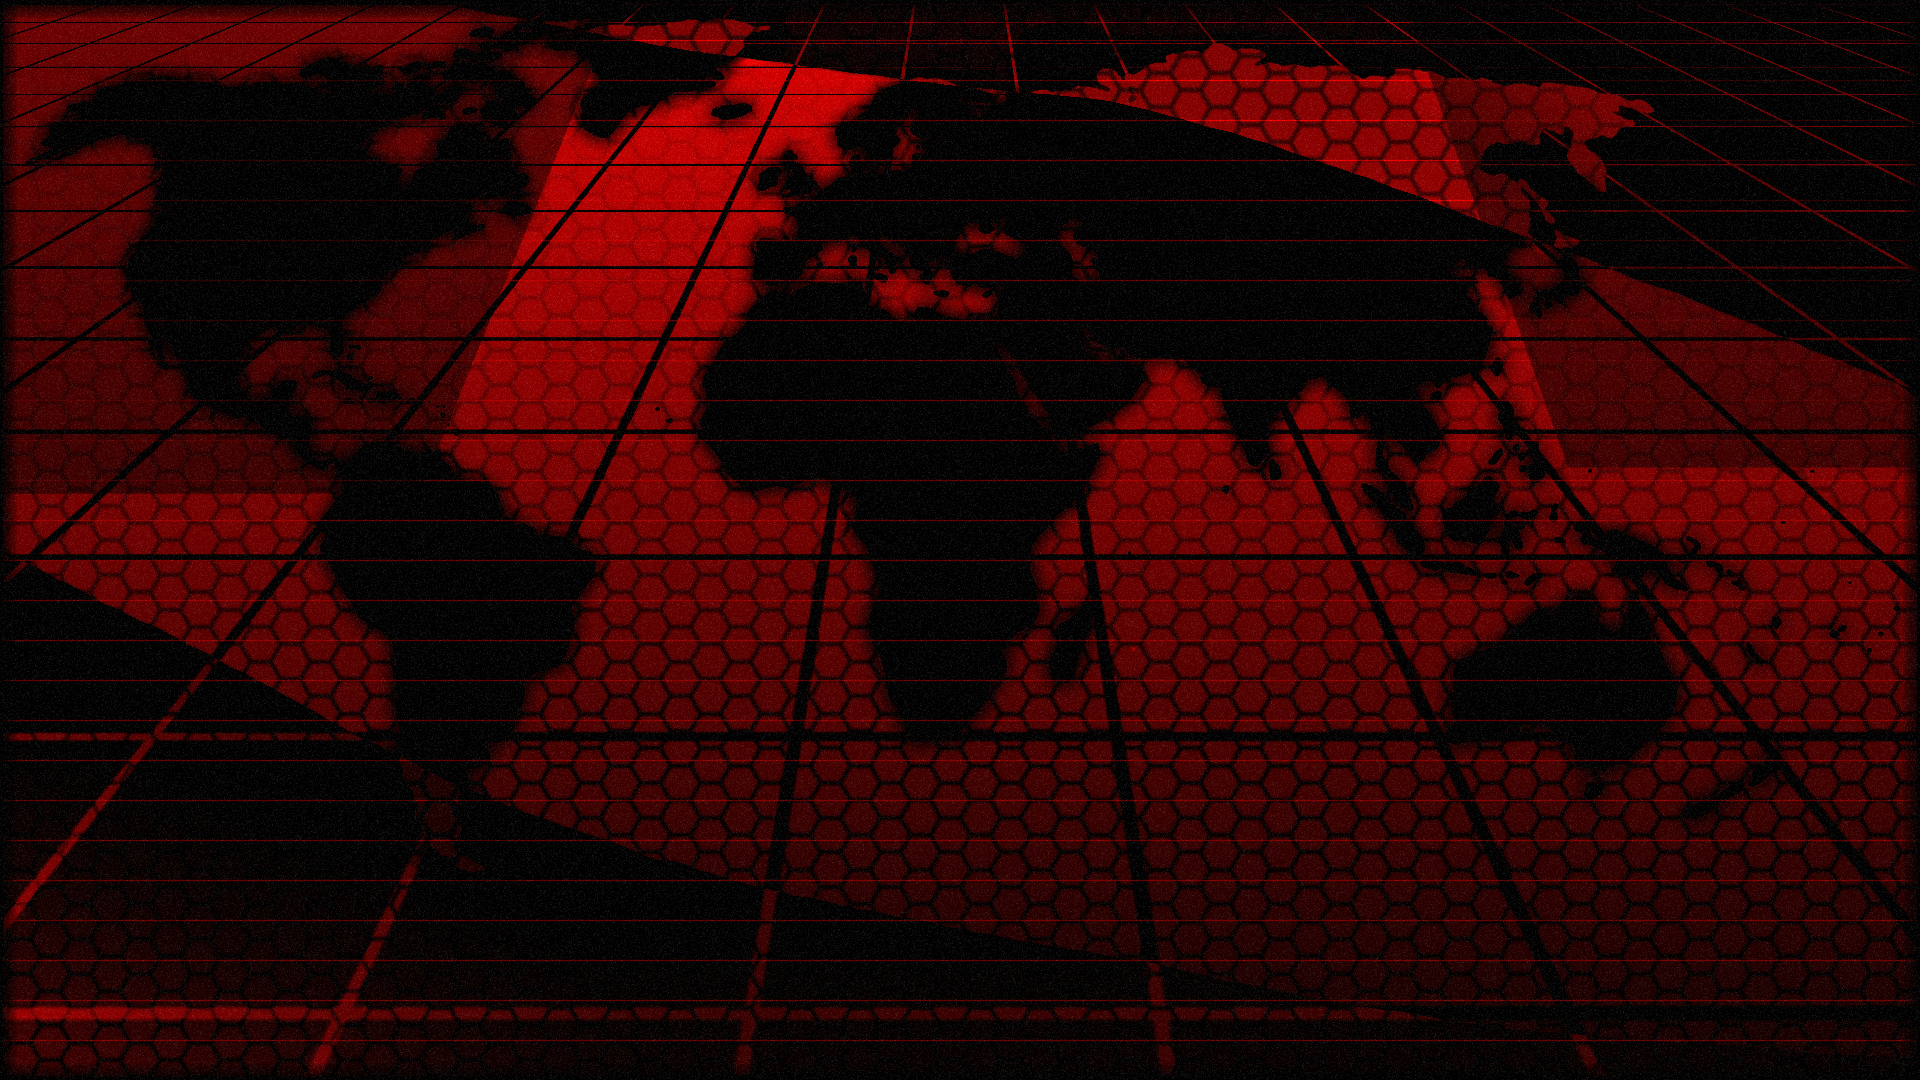 Digital world map digital world map for rainmeter theme holders by doublea7 on gumiabroncs Gallery